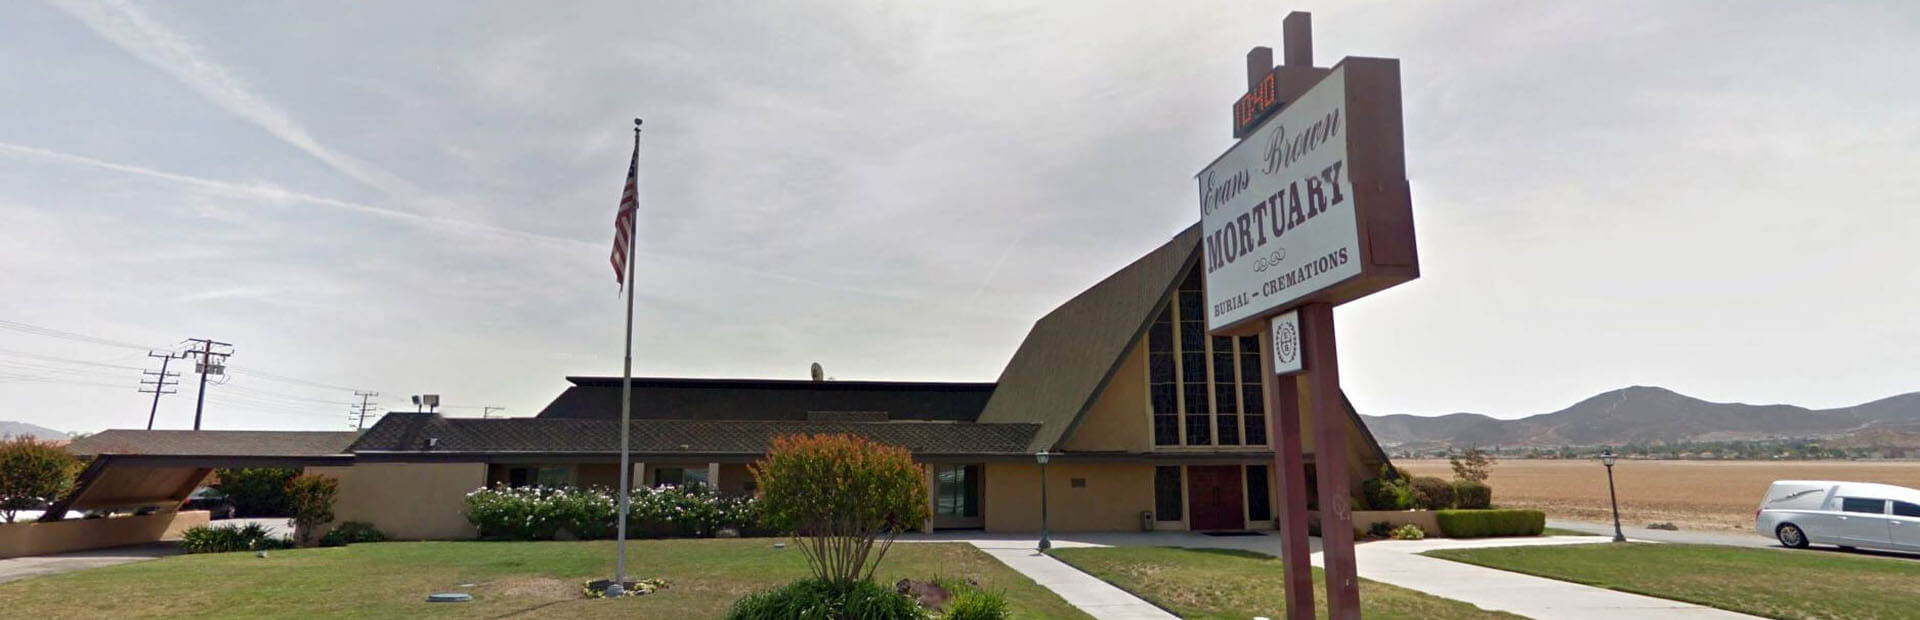 Evans-Brown Mortuary in Sun City, Lake Elsinore and Perris, CA